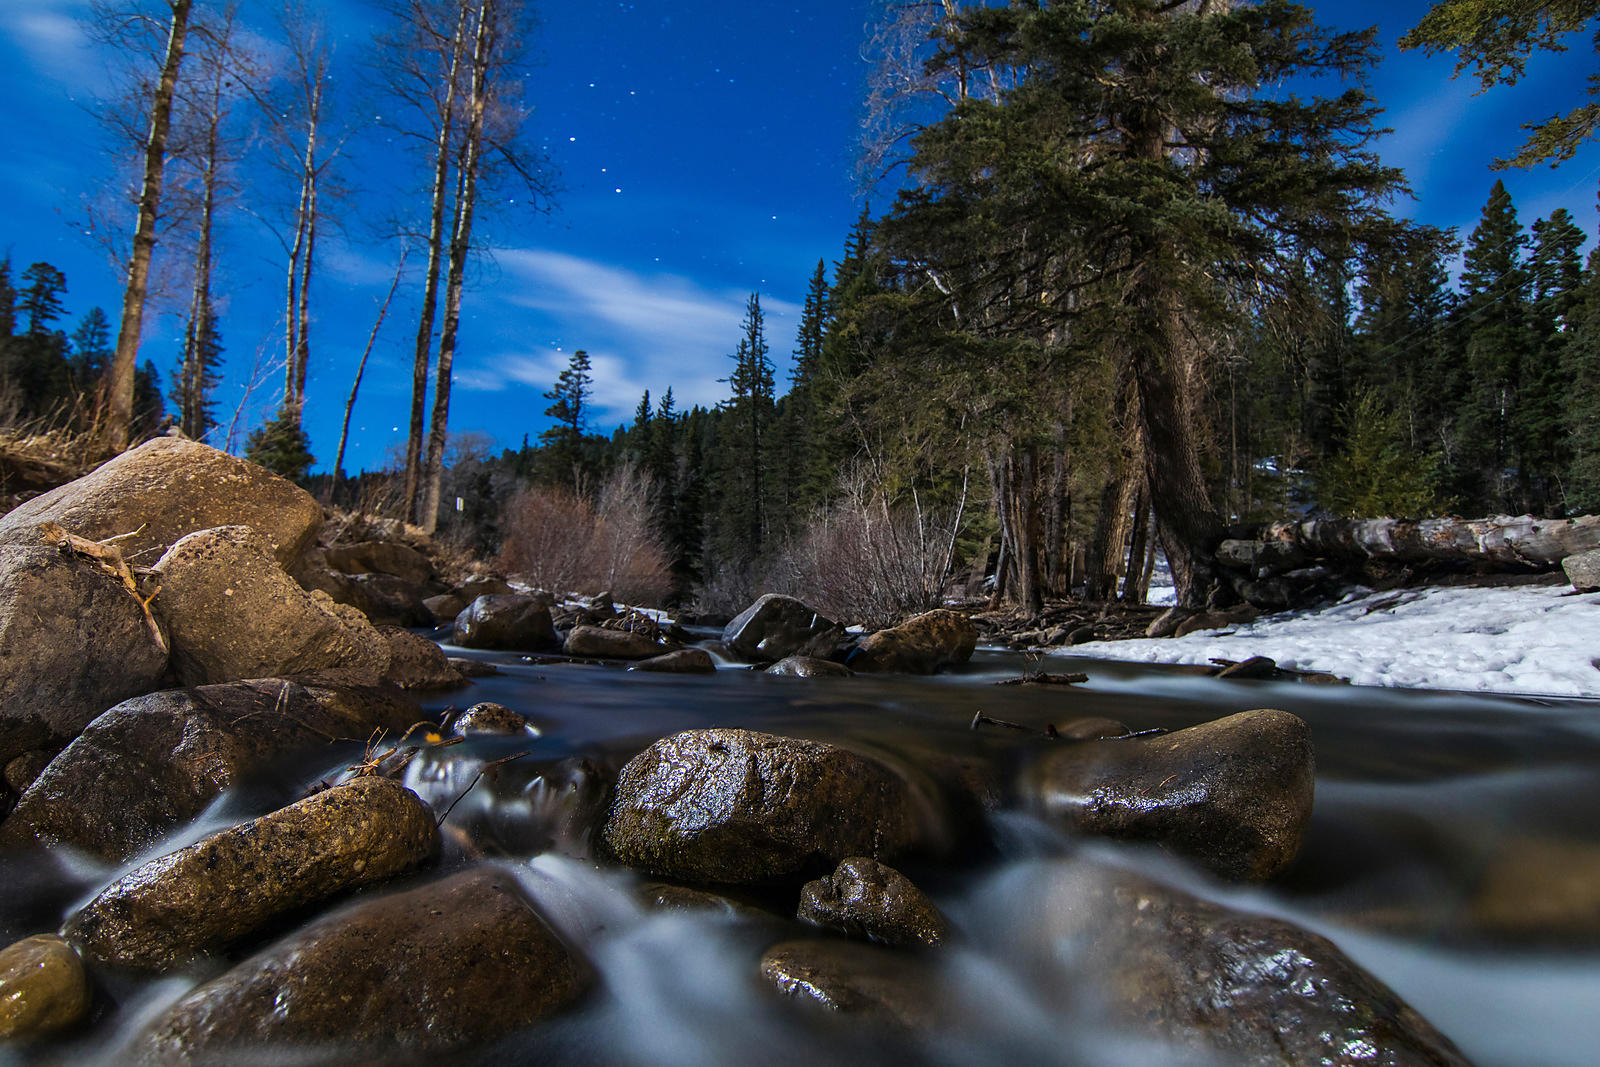 Tony_Maples_Photography_Landscape_(29)